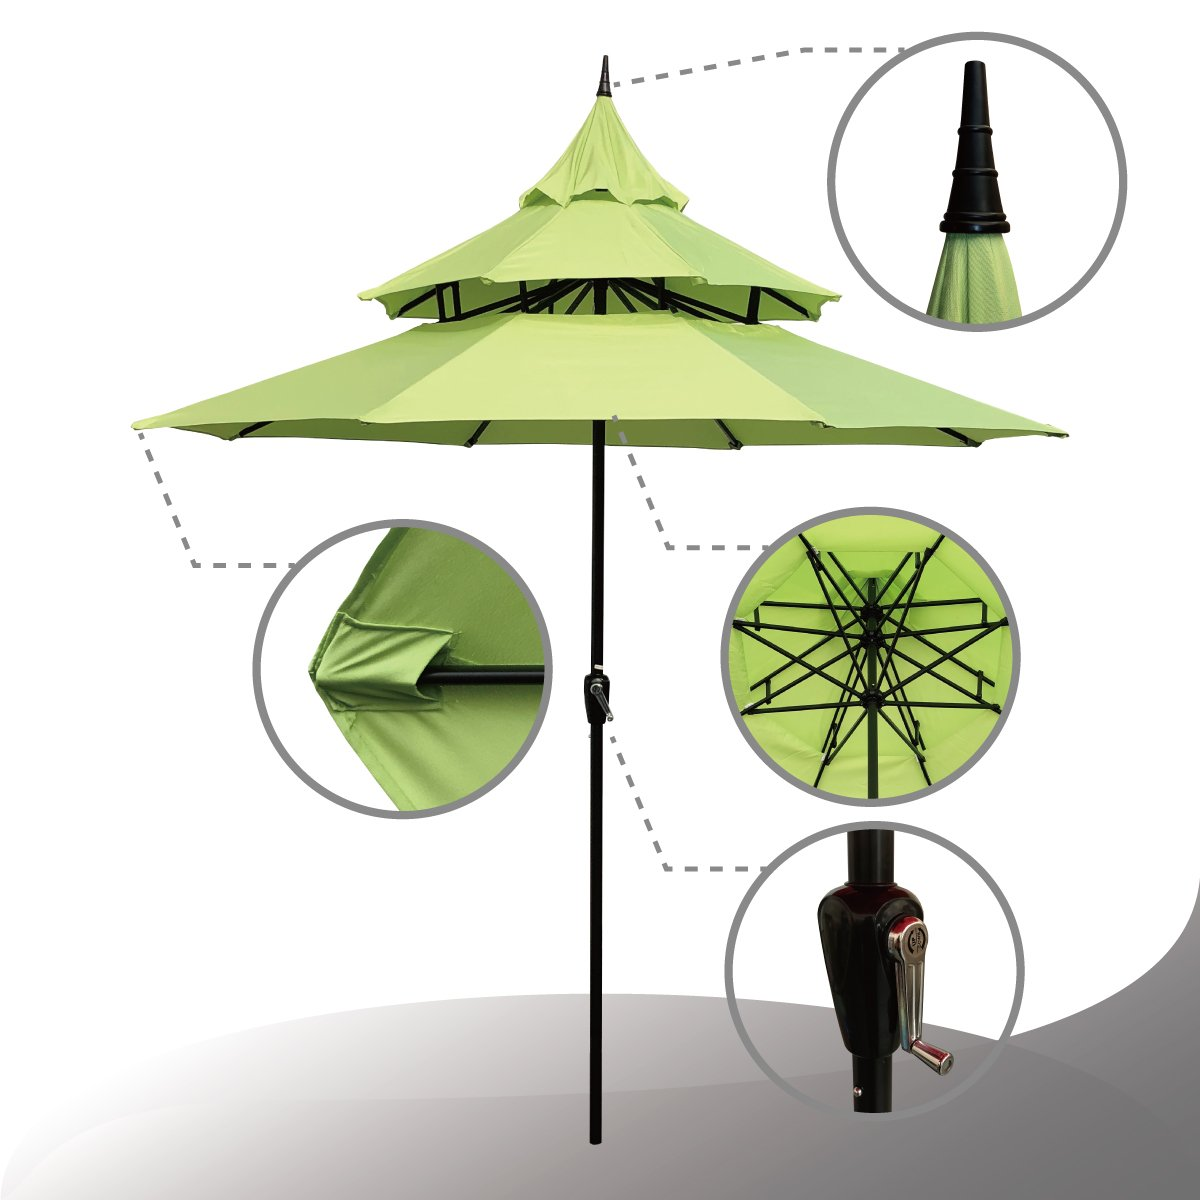 ABBLE Outdoor Patio Umbrella 9 Ft Pagoda with Crank, Weather Resistant, UV Protective Umbrella, Durable, 8 Sturdy Steel Ribs, Market Outdoor Table Umbrella, Lime Green